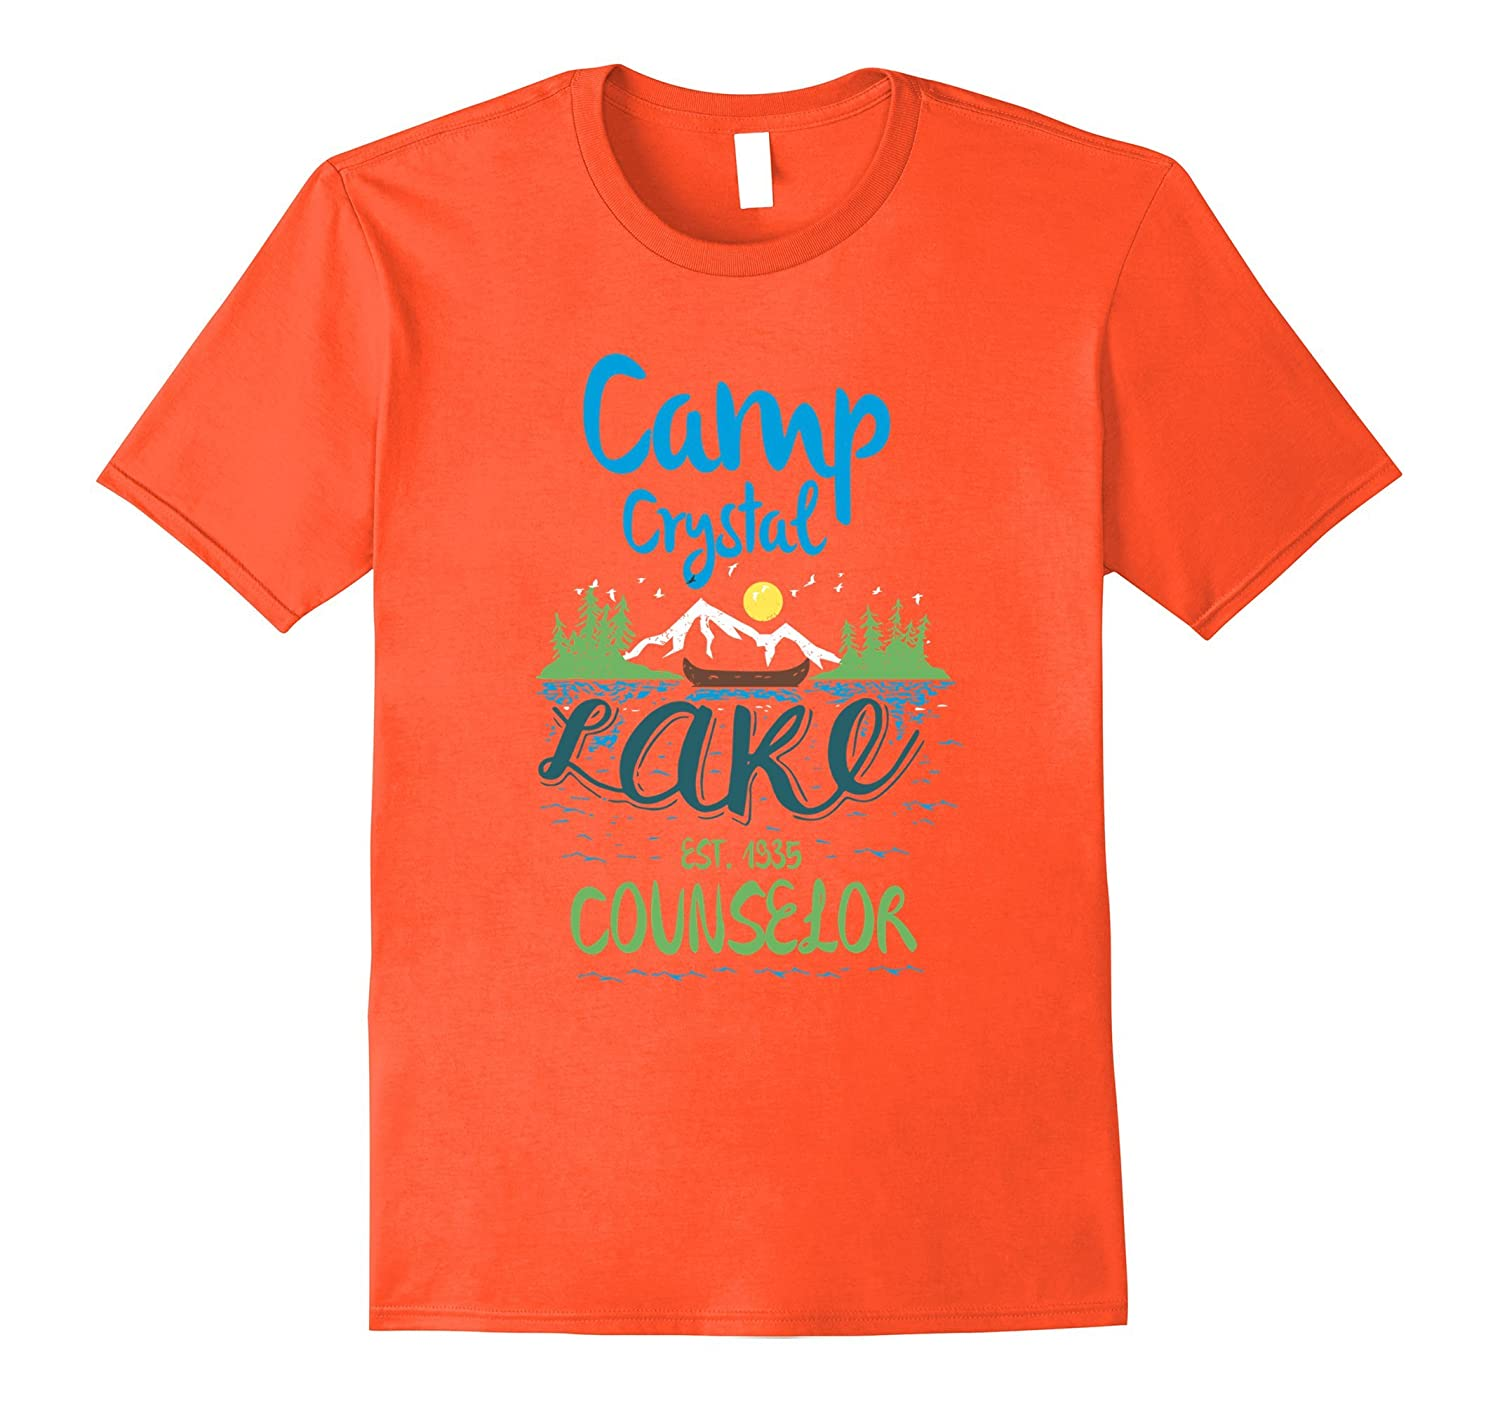 75776c3b644 Camp Crystal Lake Counselor est. 1935 Shirt-ANZ - Anztshirt